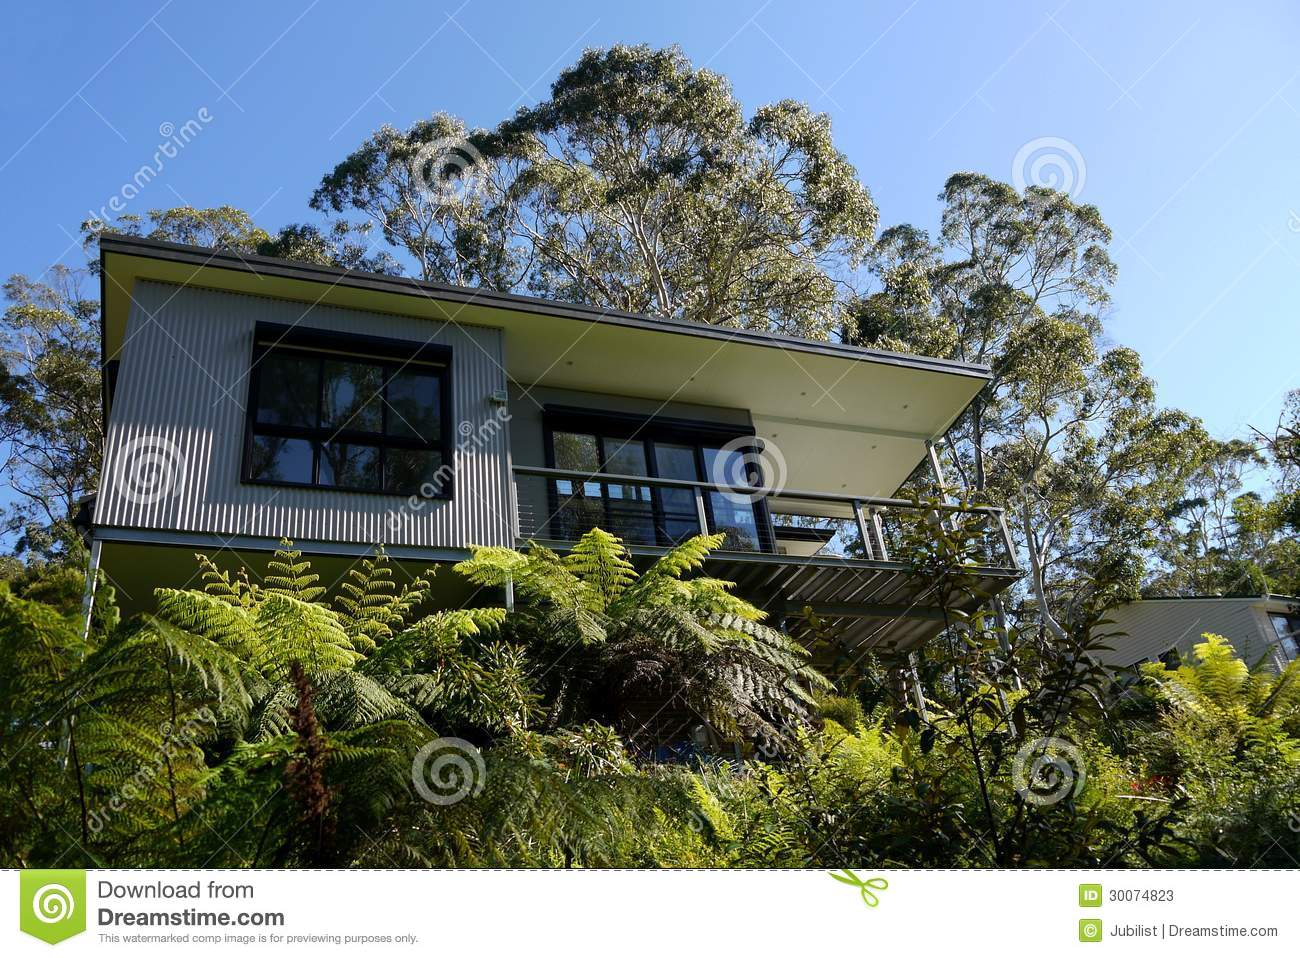 ustralia: Modern House In Bush Stock Photos - Image: 30074823 - ^